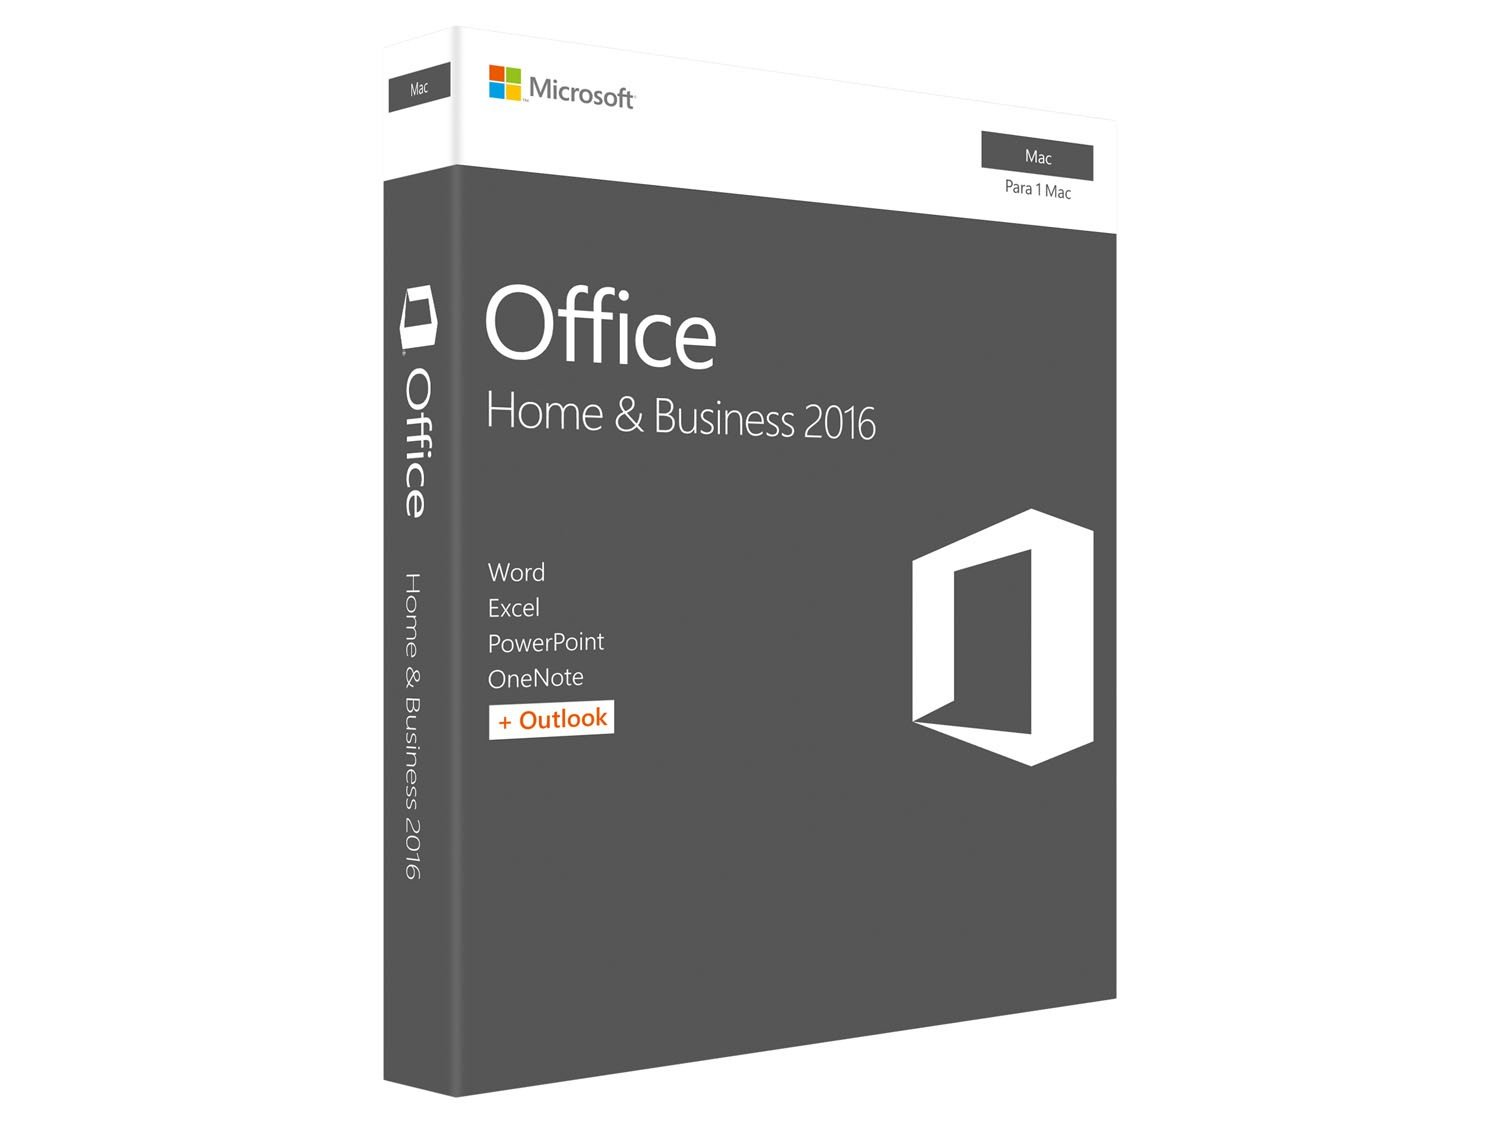 Foto 1 - Office Home and Business 2016 para Mac - Microsoft